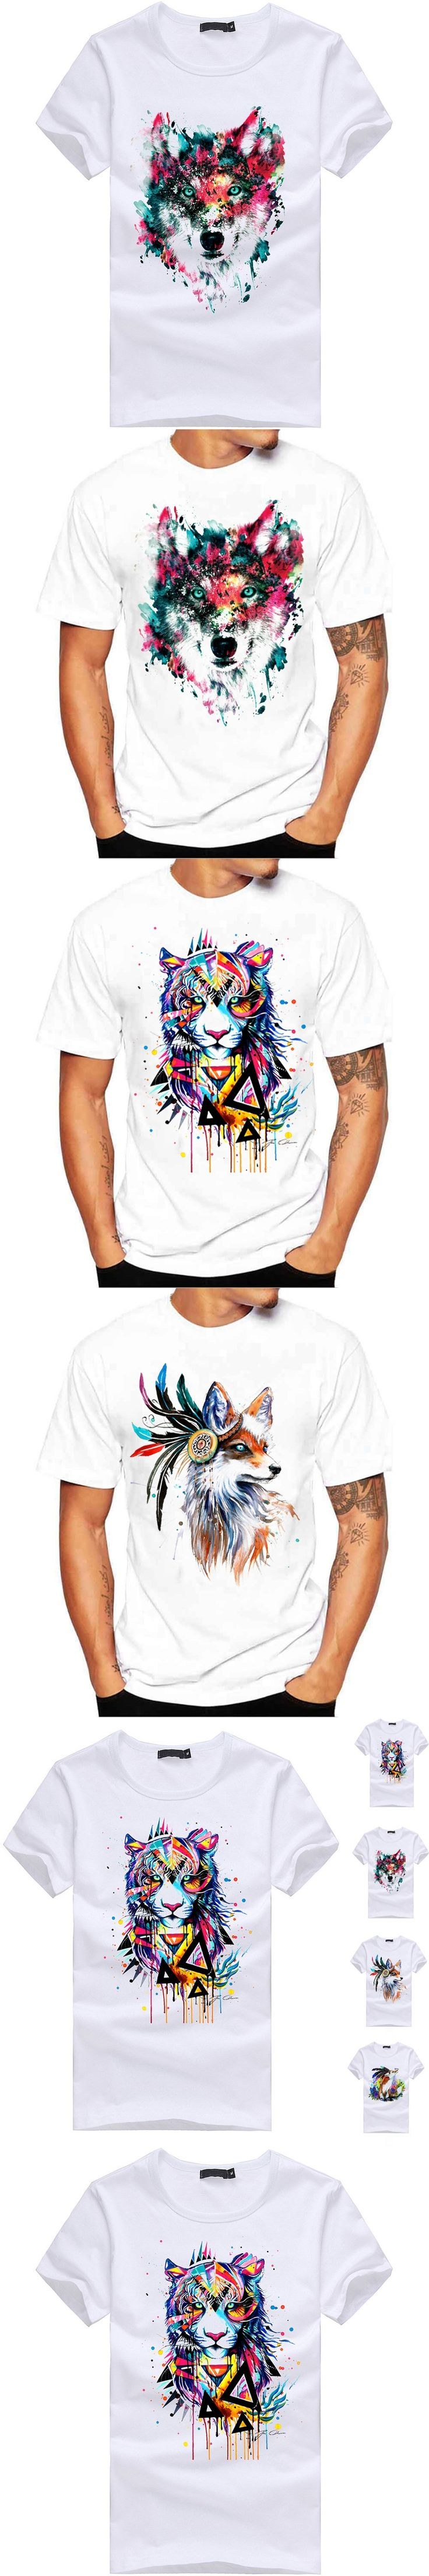 Fashion Men Women Short Sleeves Cute Animals Printed T-shirt Funny O-neck Casual Summer Couples Tee Tops -MX8